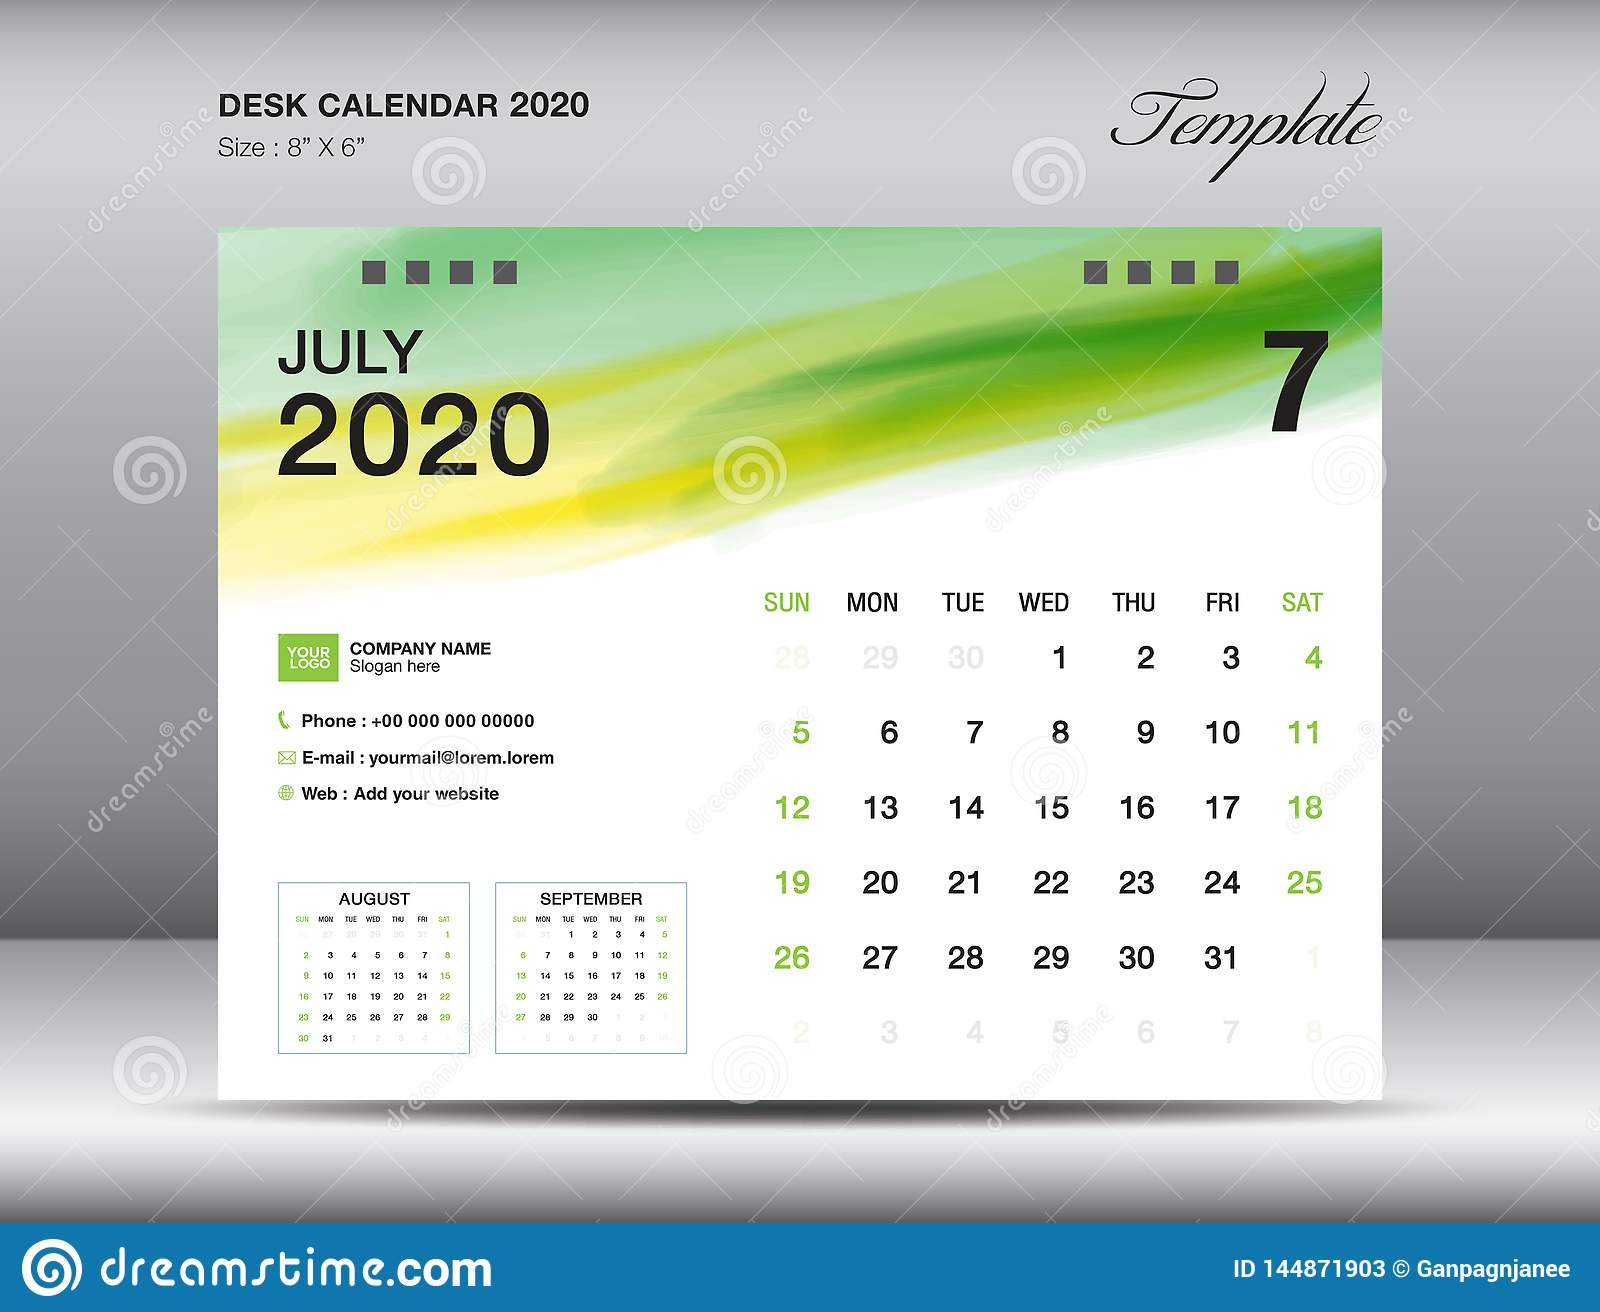 Desk Calendar 2020 Template Vector, JULY 2020 Month With